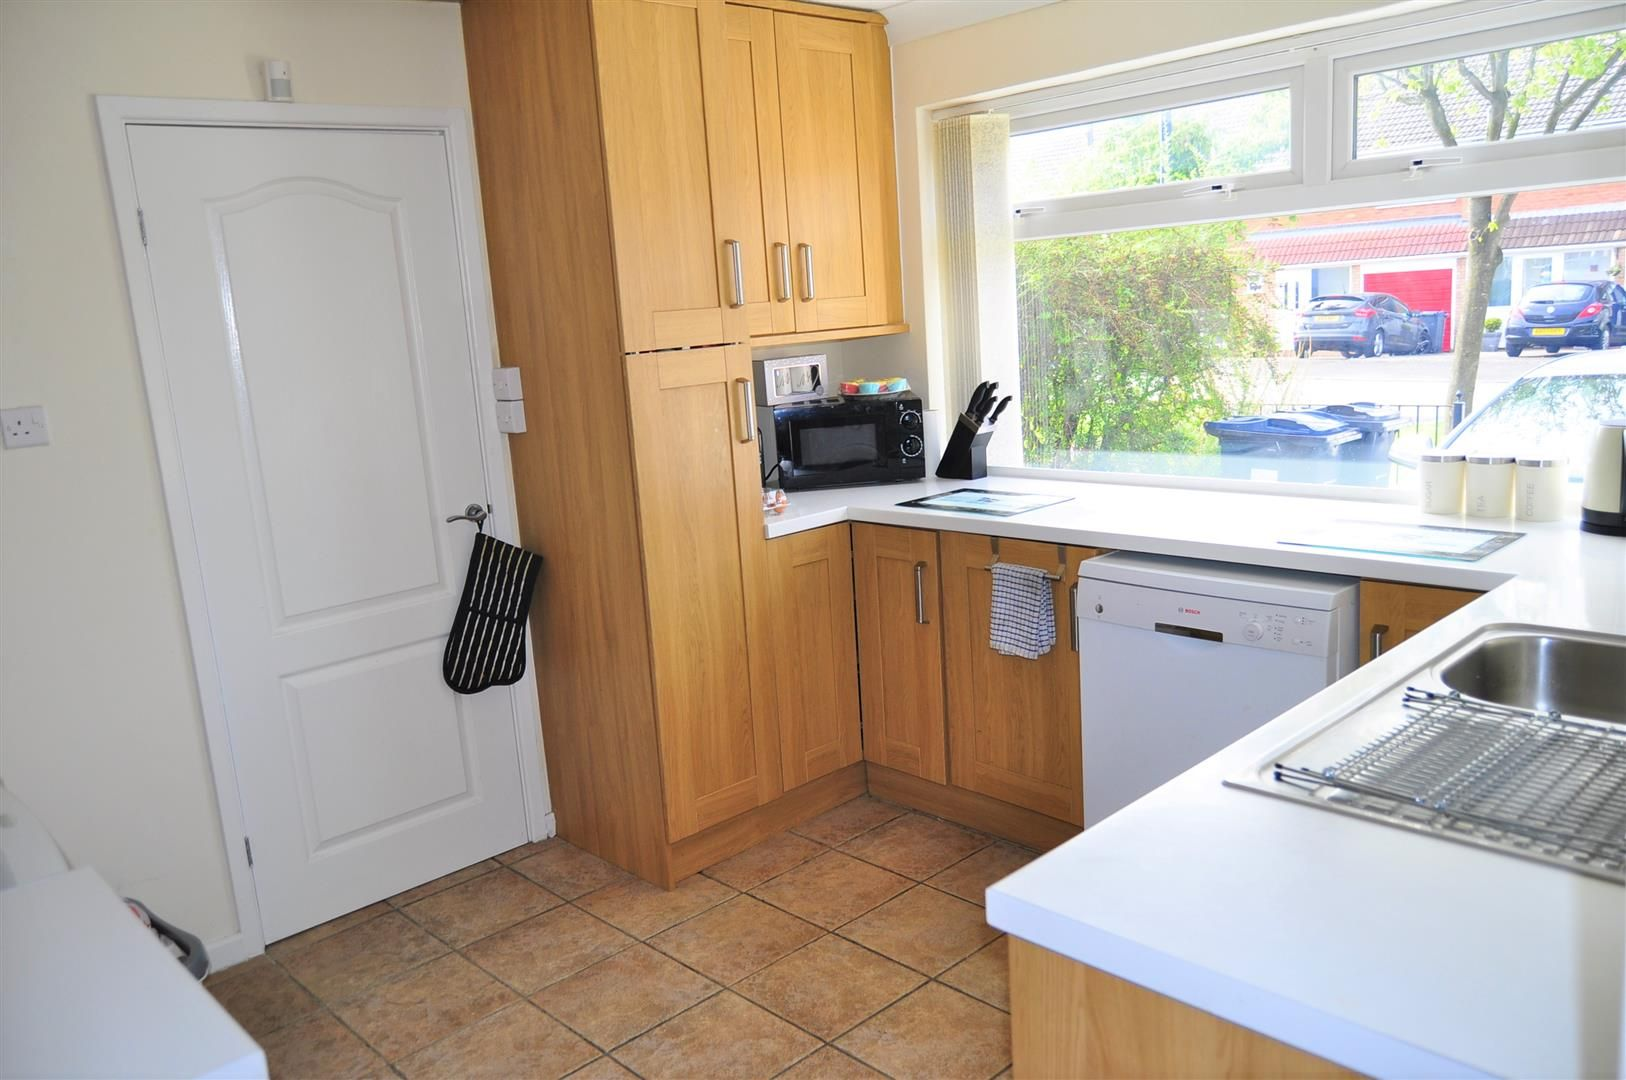 3 bed end-of-terrace for sale in Quinton 5